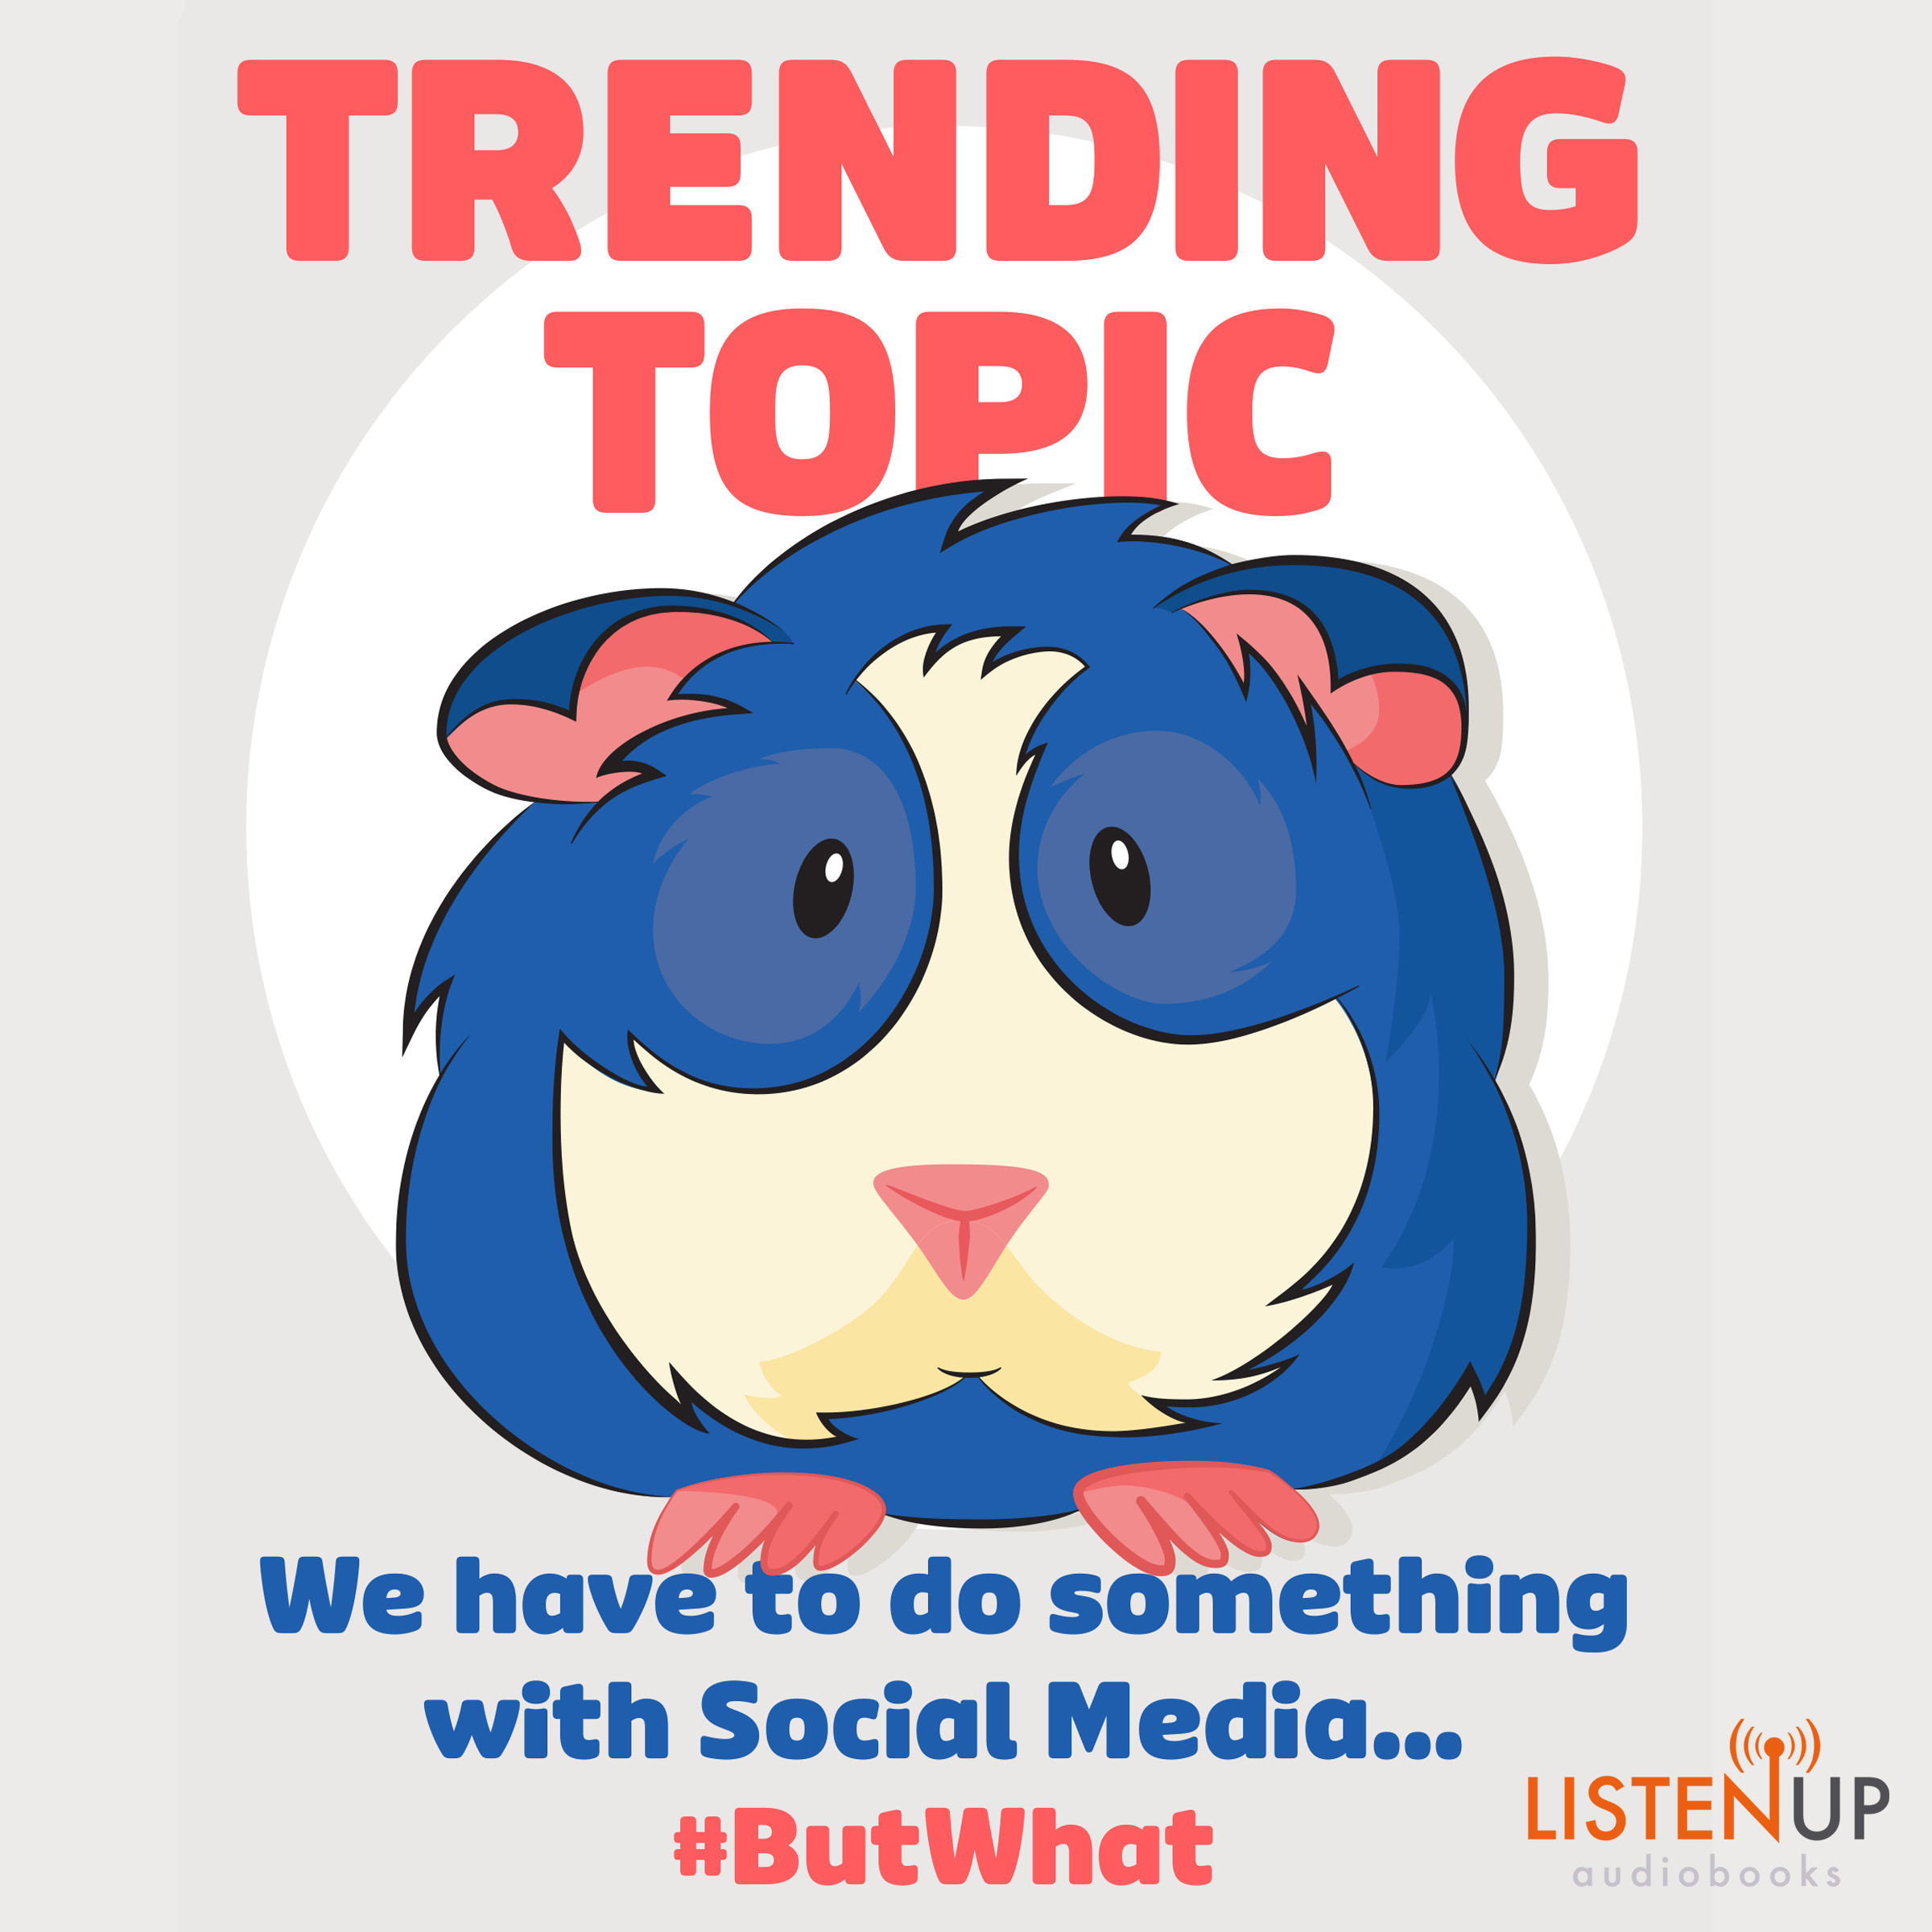 Trending Topic cover image